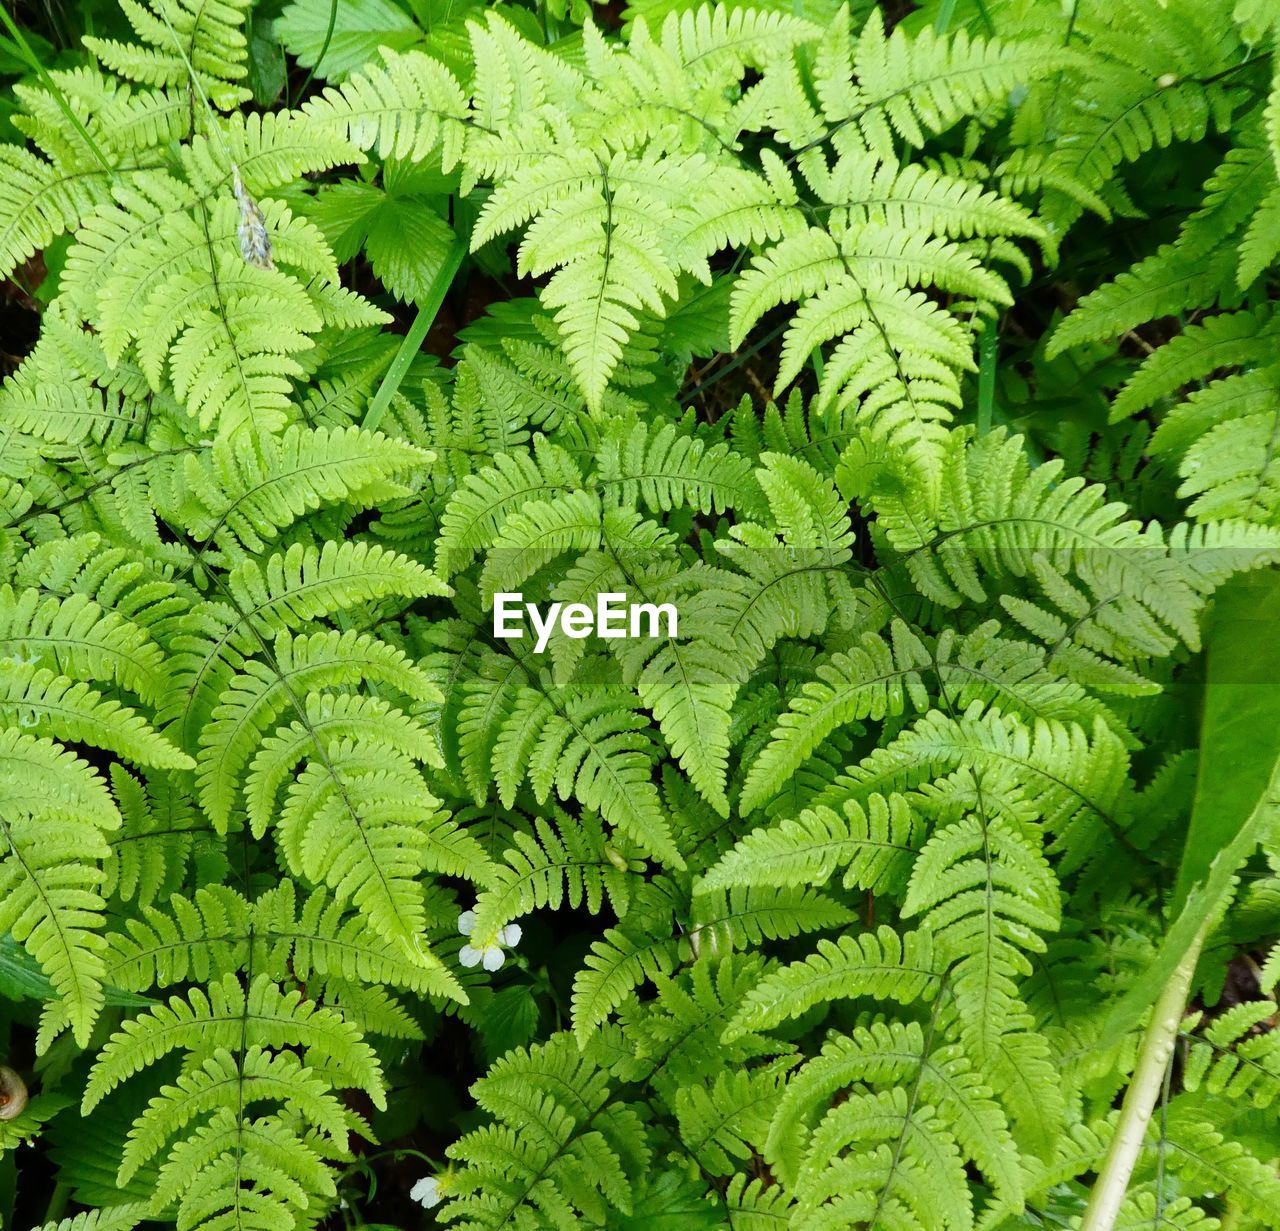 green color, growth, plant, leaf, plant part, fern, no people, full frame, day, backgrounds, nature, foliage, beauty in nature, lush foliage, close-up, outdoors, tree, freshness, high angle view, tranquility, rainforest, leaves